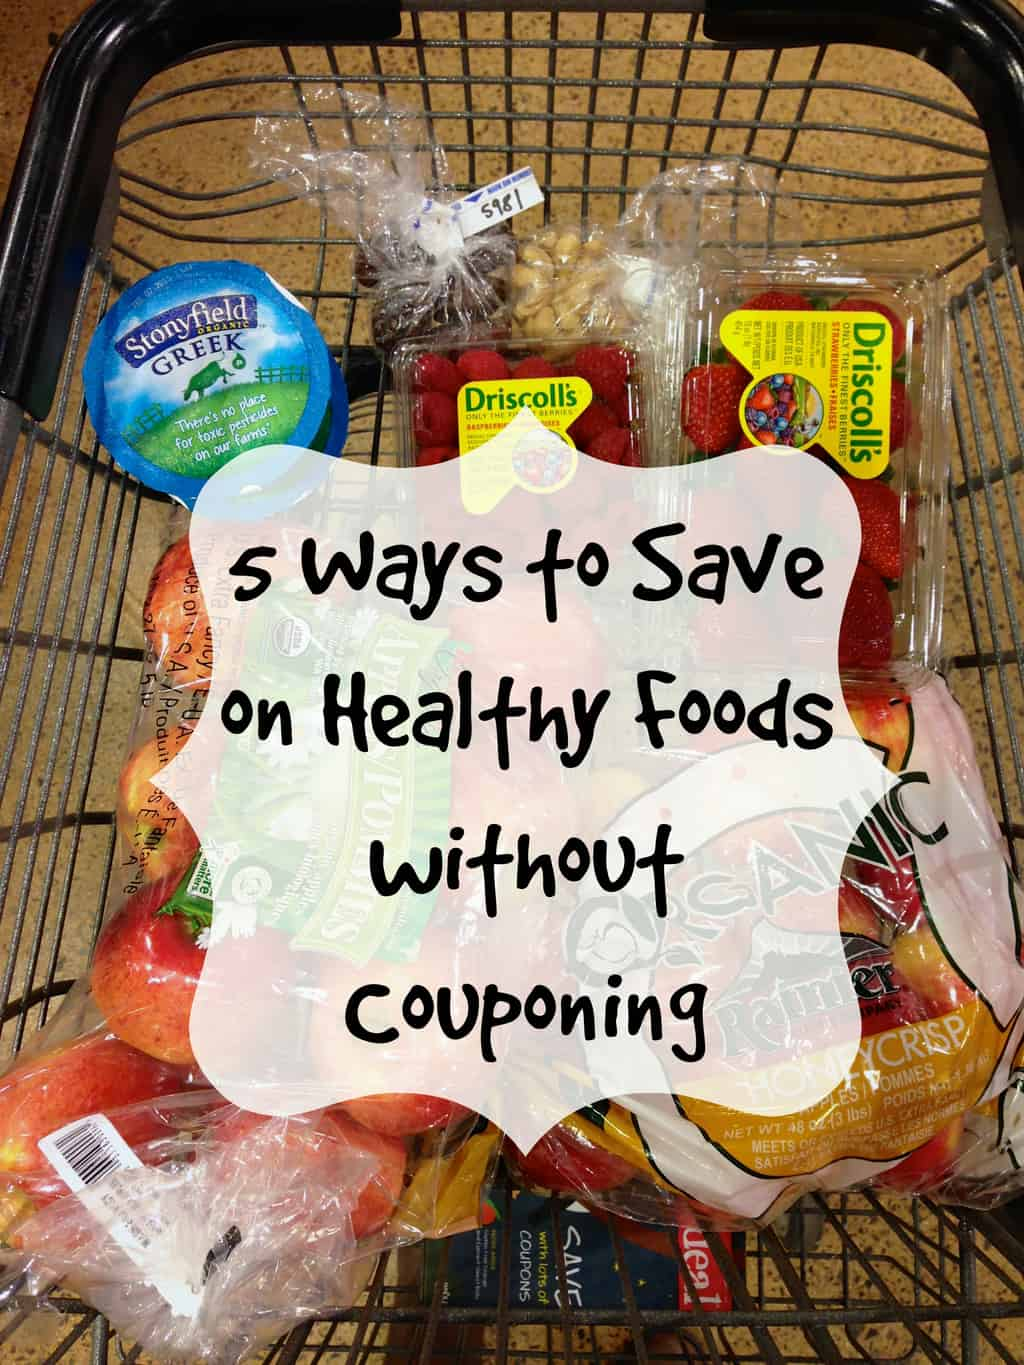 5 Ways to Save on Healthy Foods without Couponing